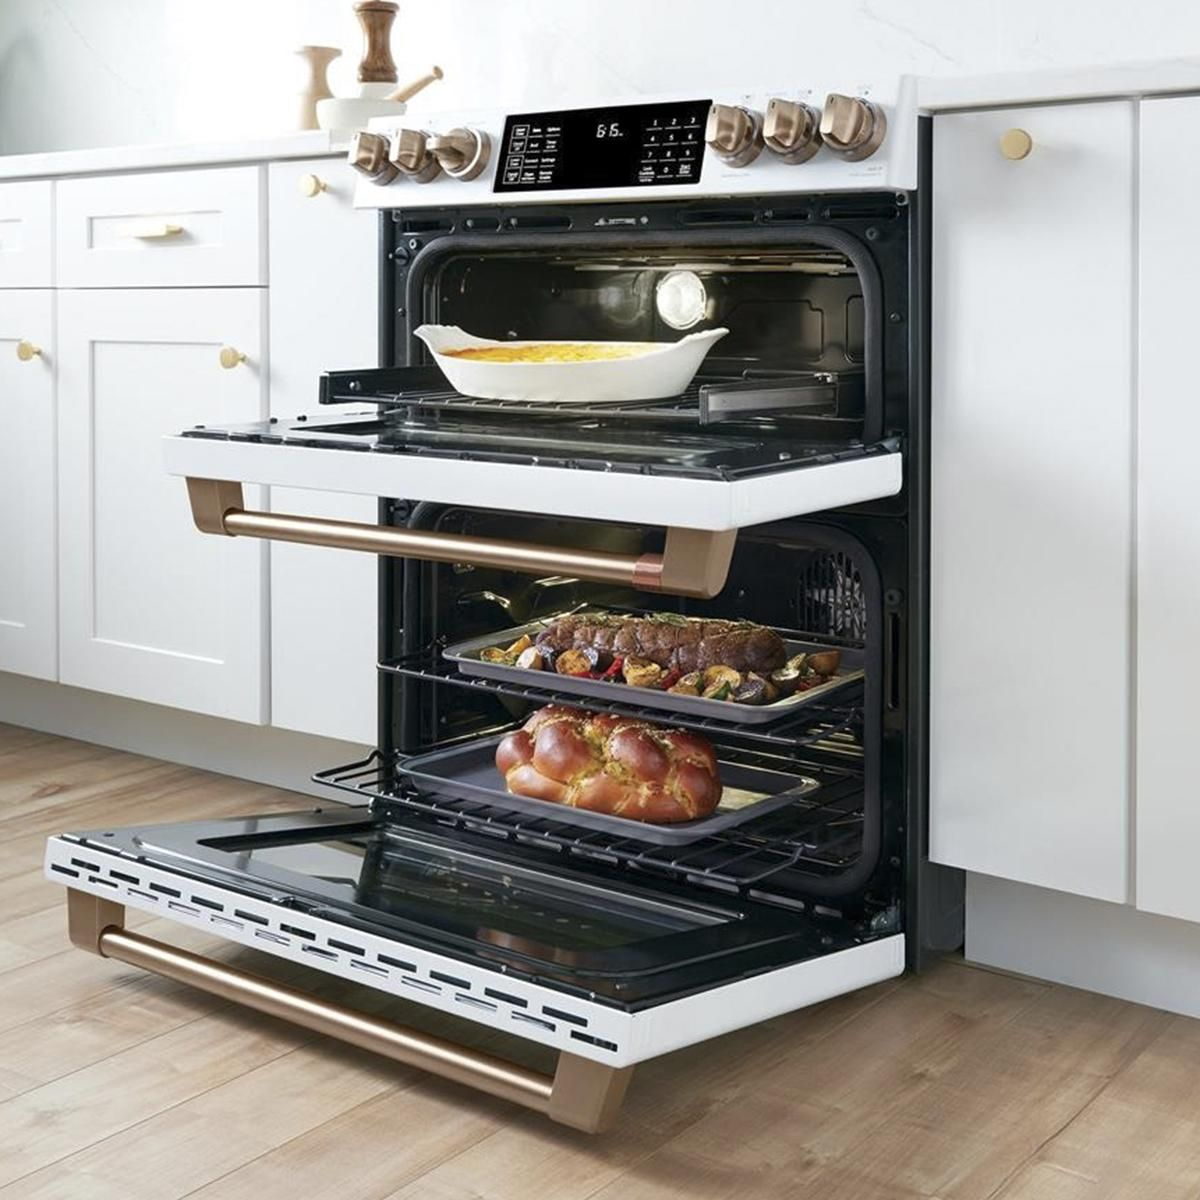 Ge Cafe 30 Slide In Double Oven